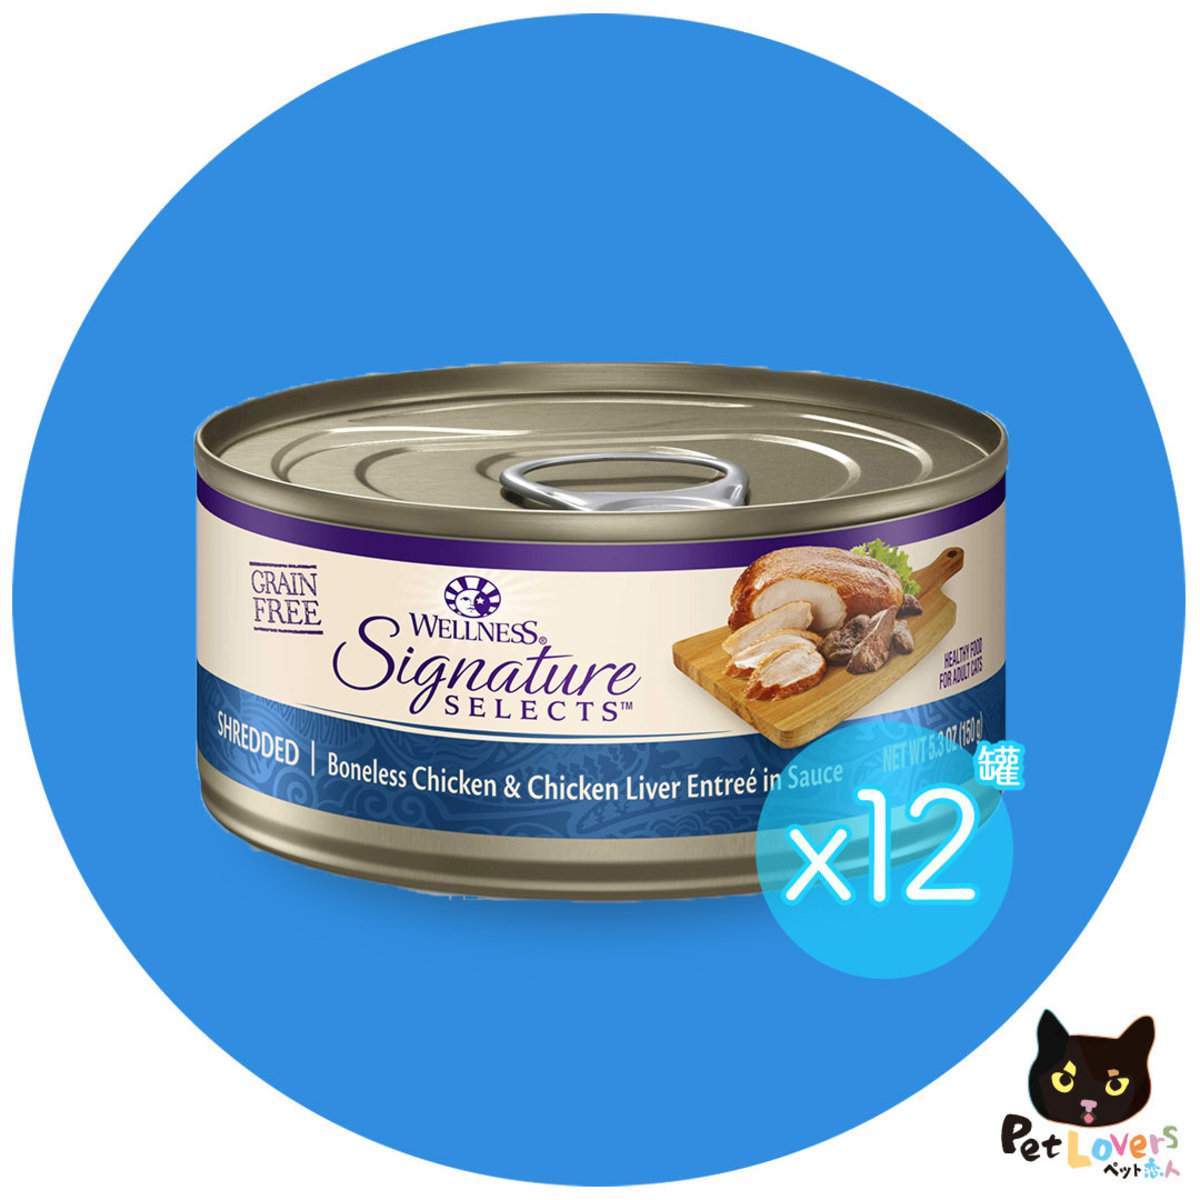 SIGNATURE SELECTS Shredded Chicken & Chicken Liver 2.8oz